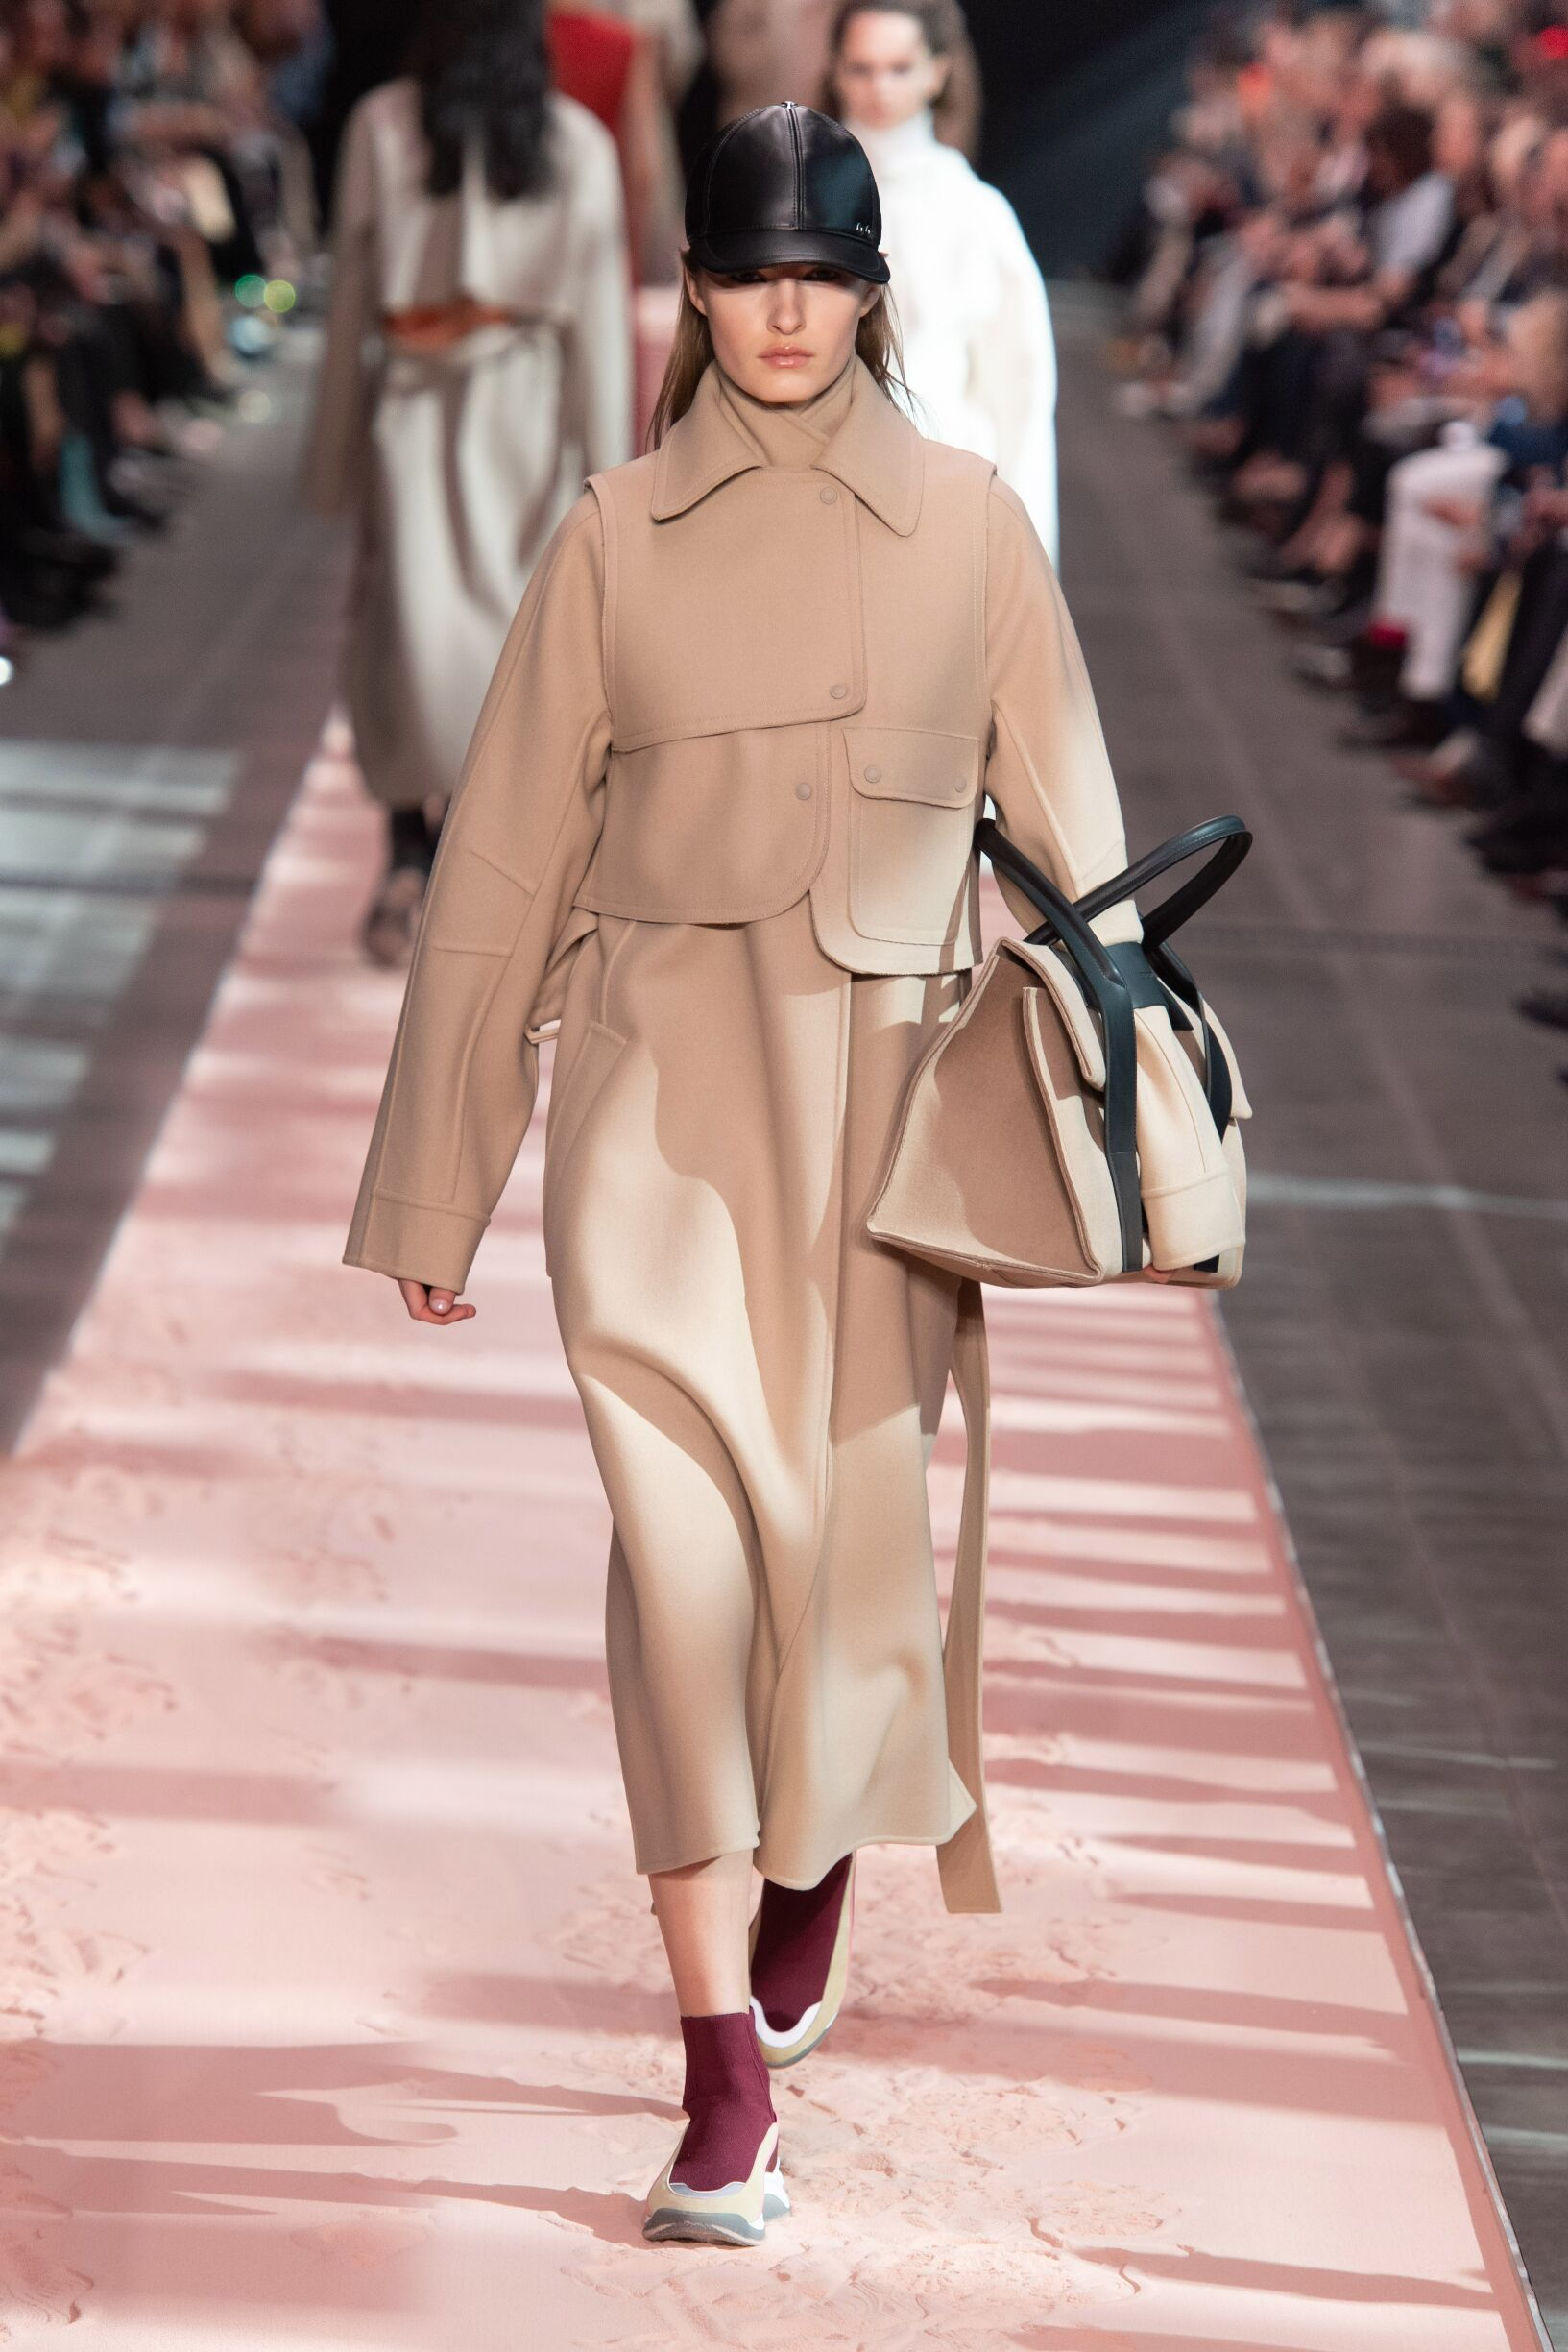 Woman FW 2019 Sportmax Show Milan Fashion Week